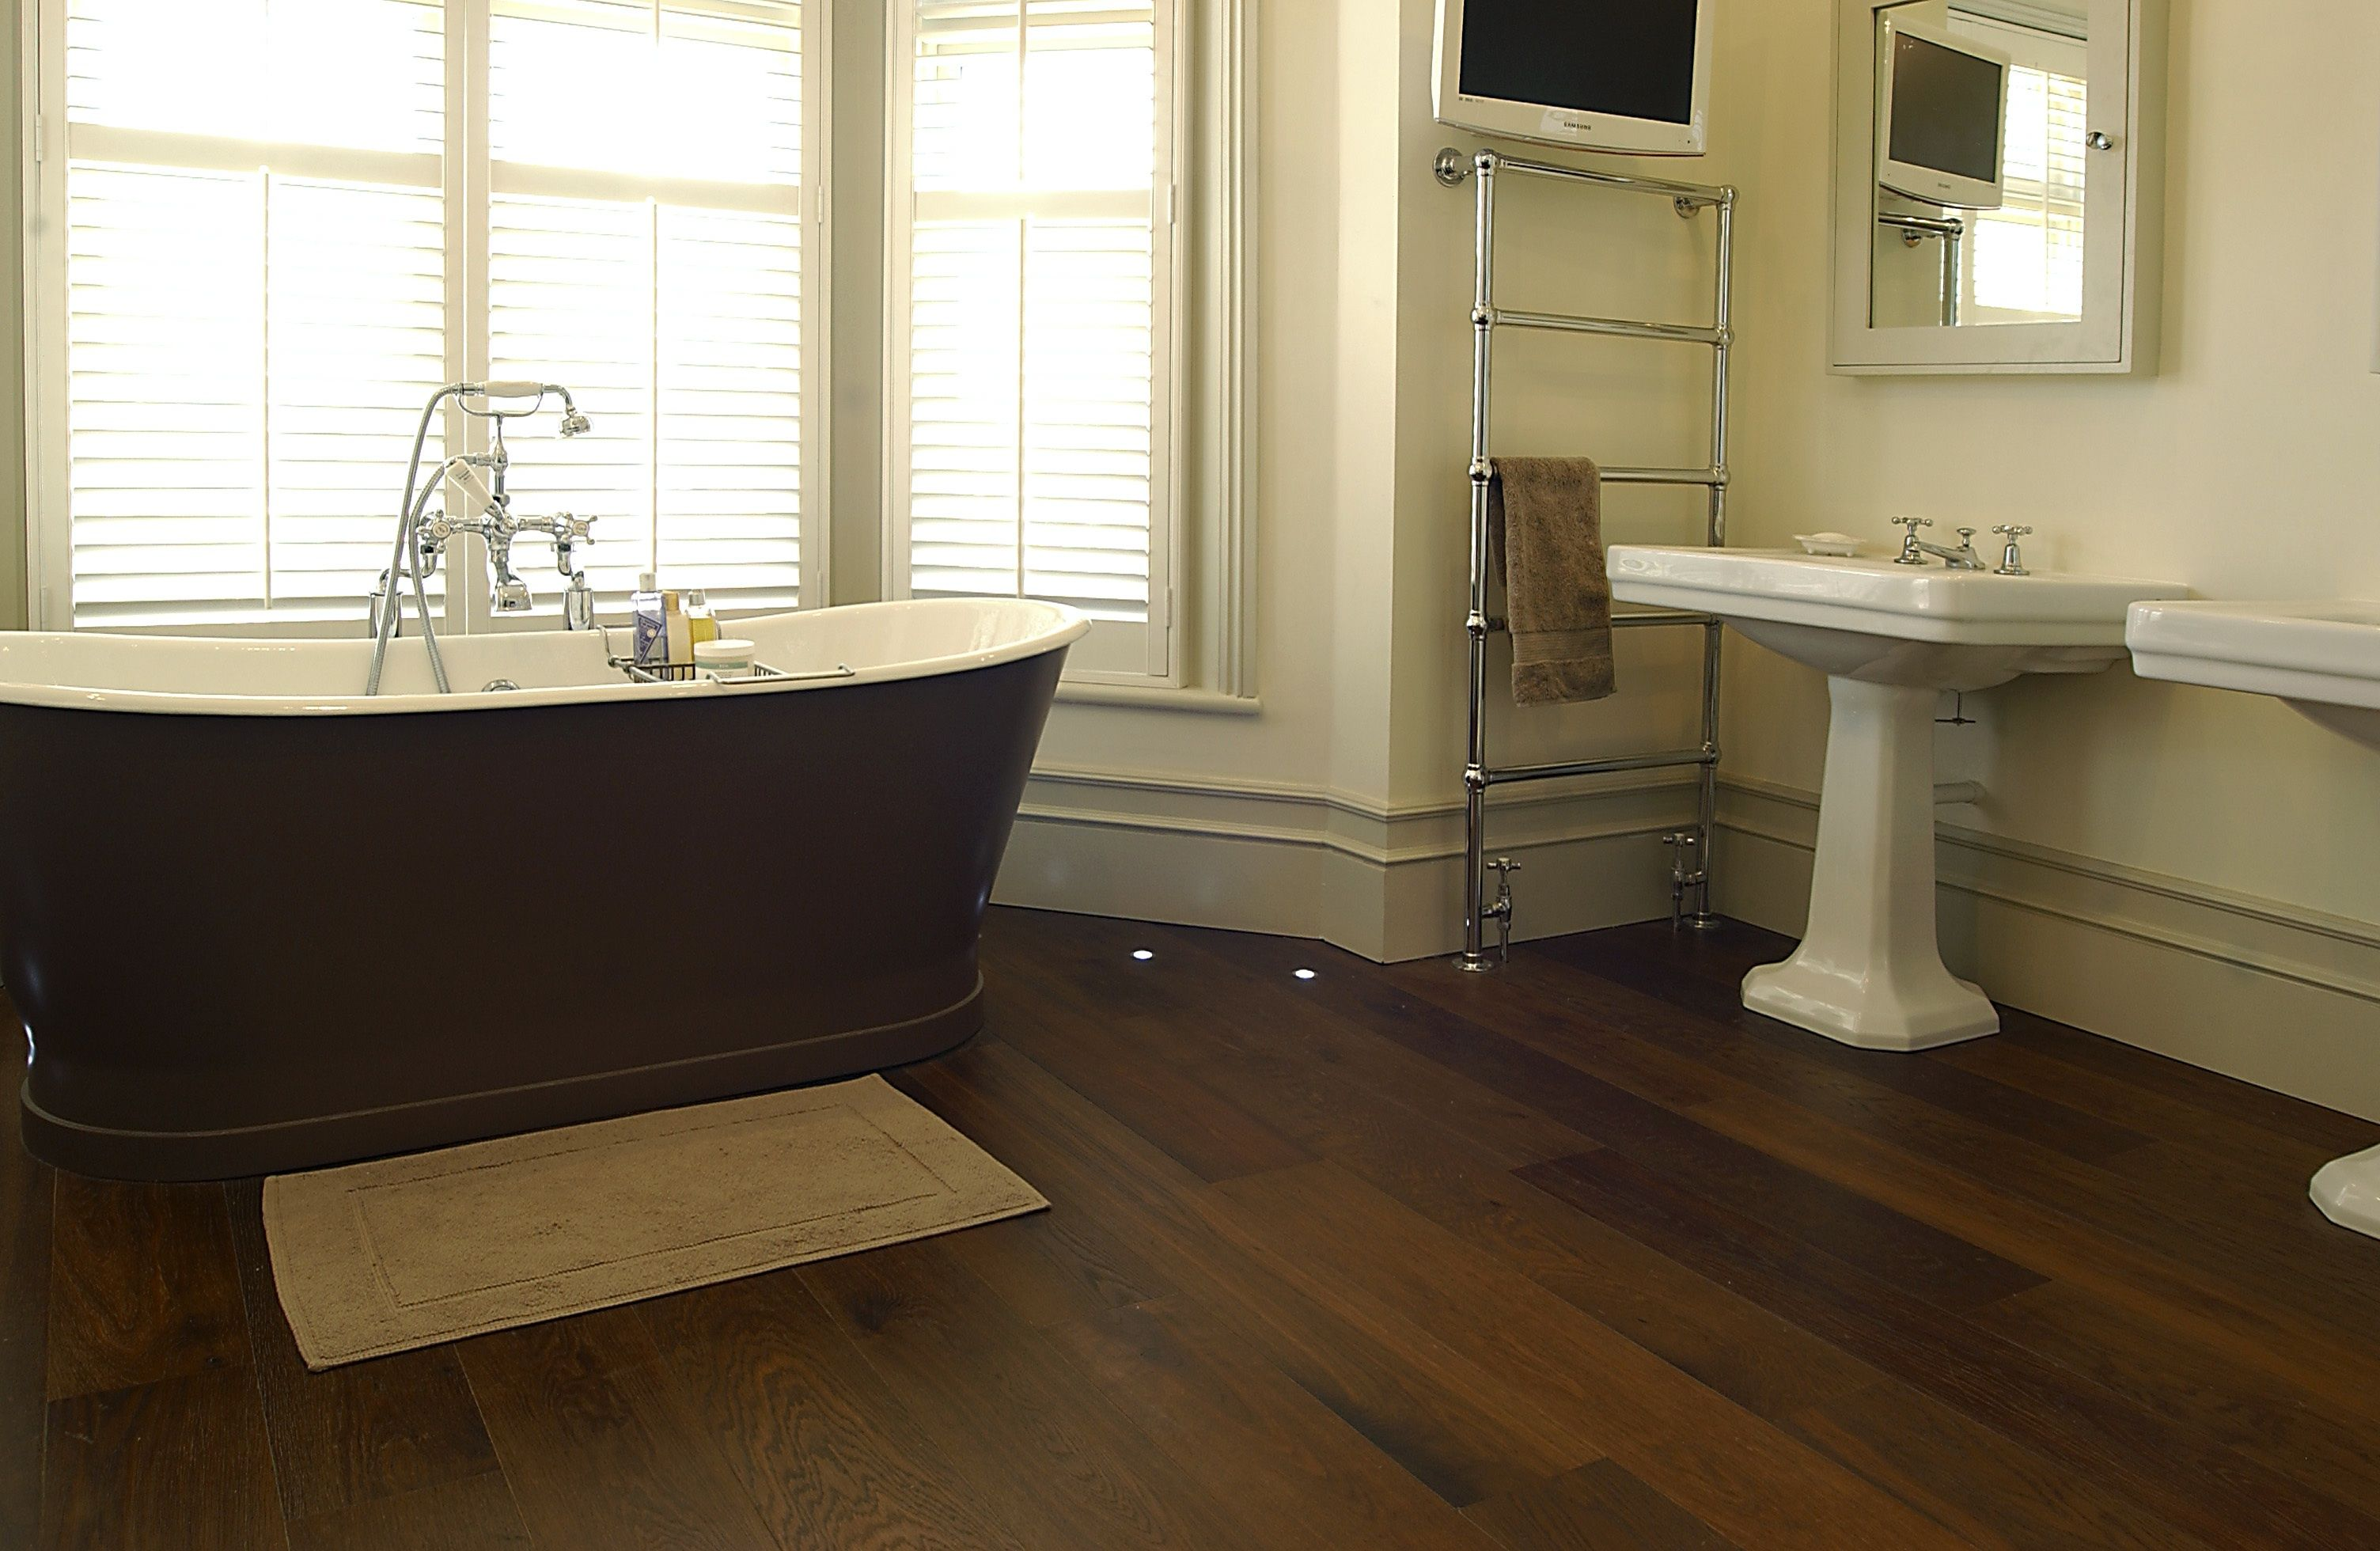 Should you install hardwood flooring in your bathroom